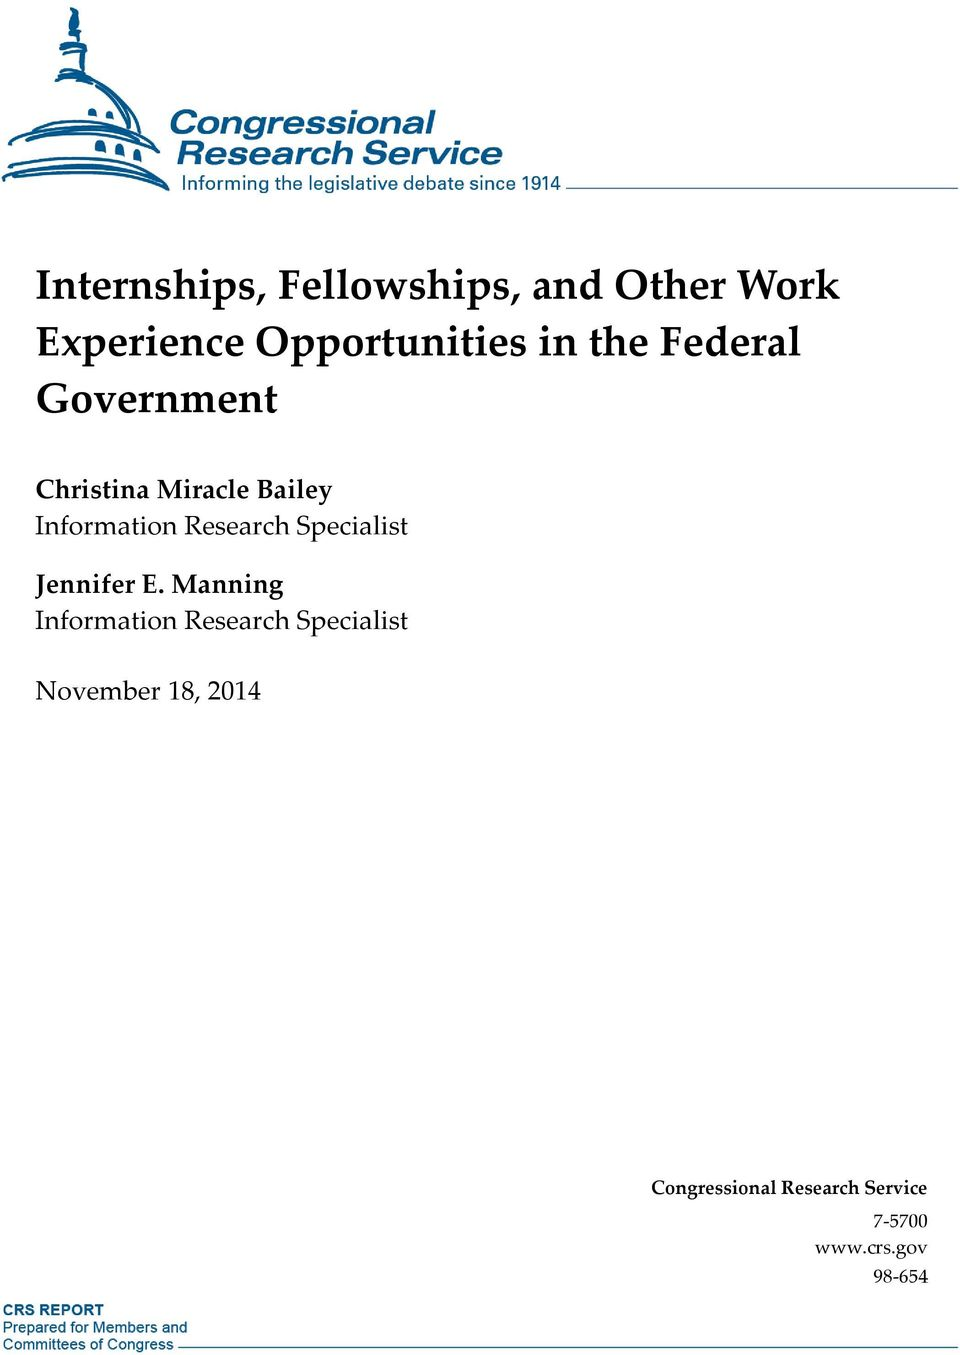 Internships, Fellowships, and Other Work Experience